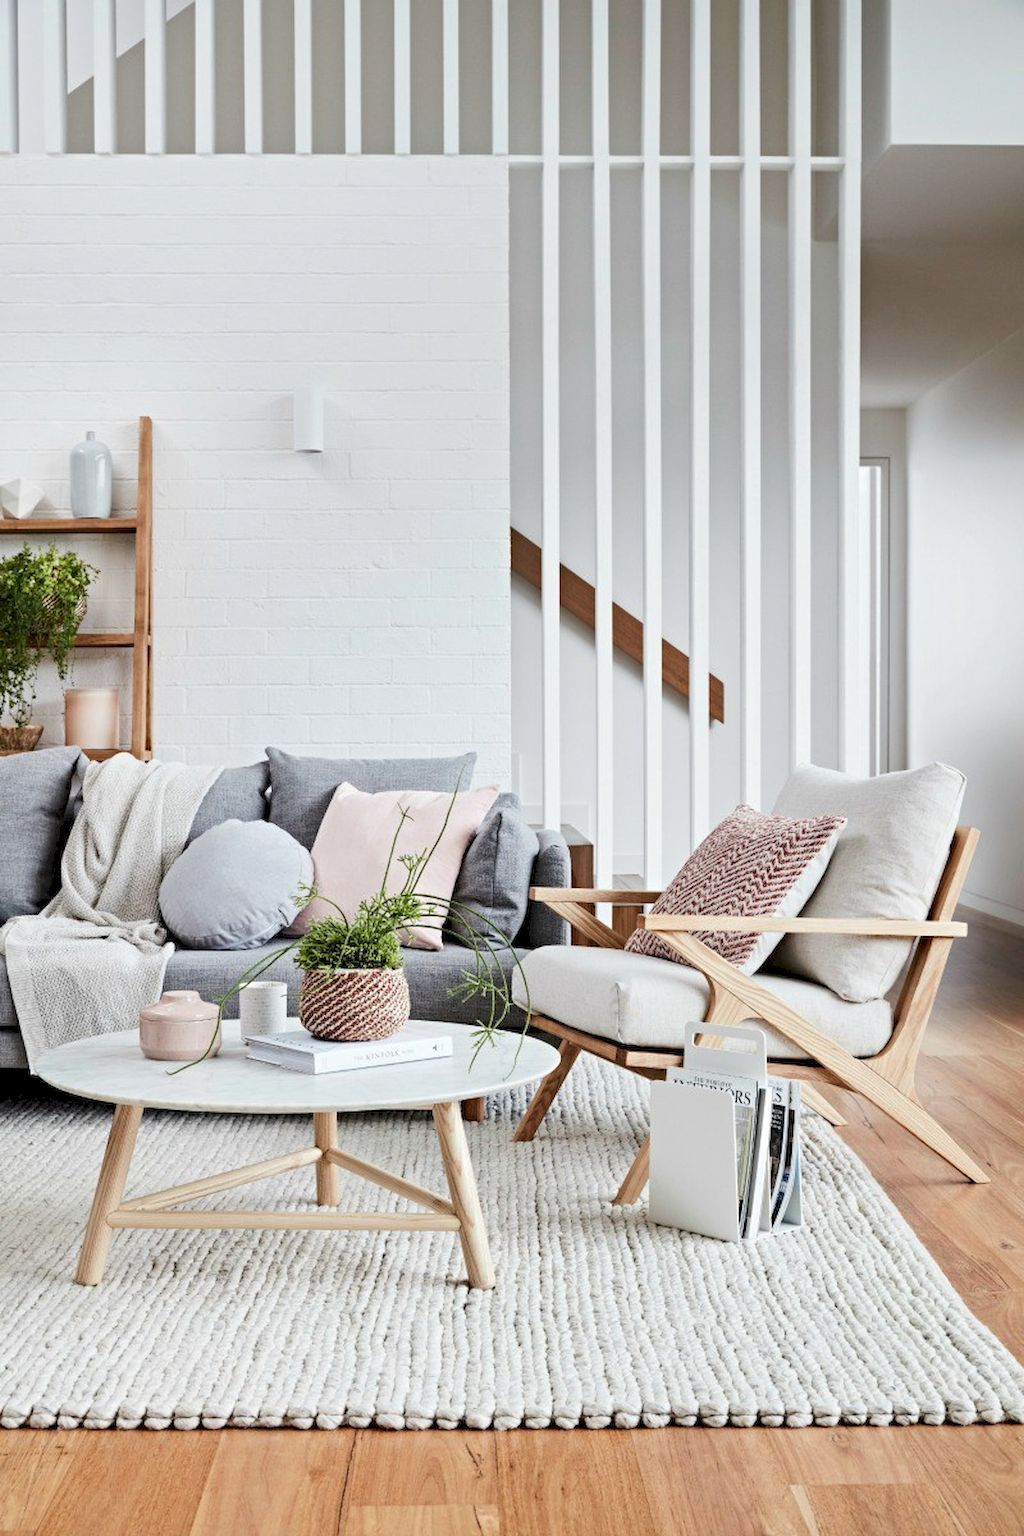 Gorgeous 90 Chic and Stylish Scandinavian Living